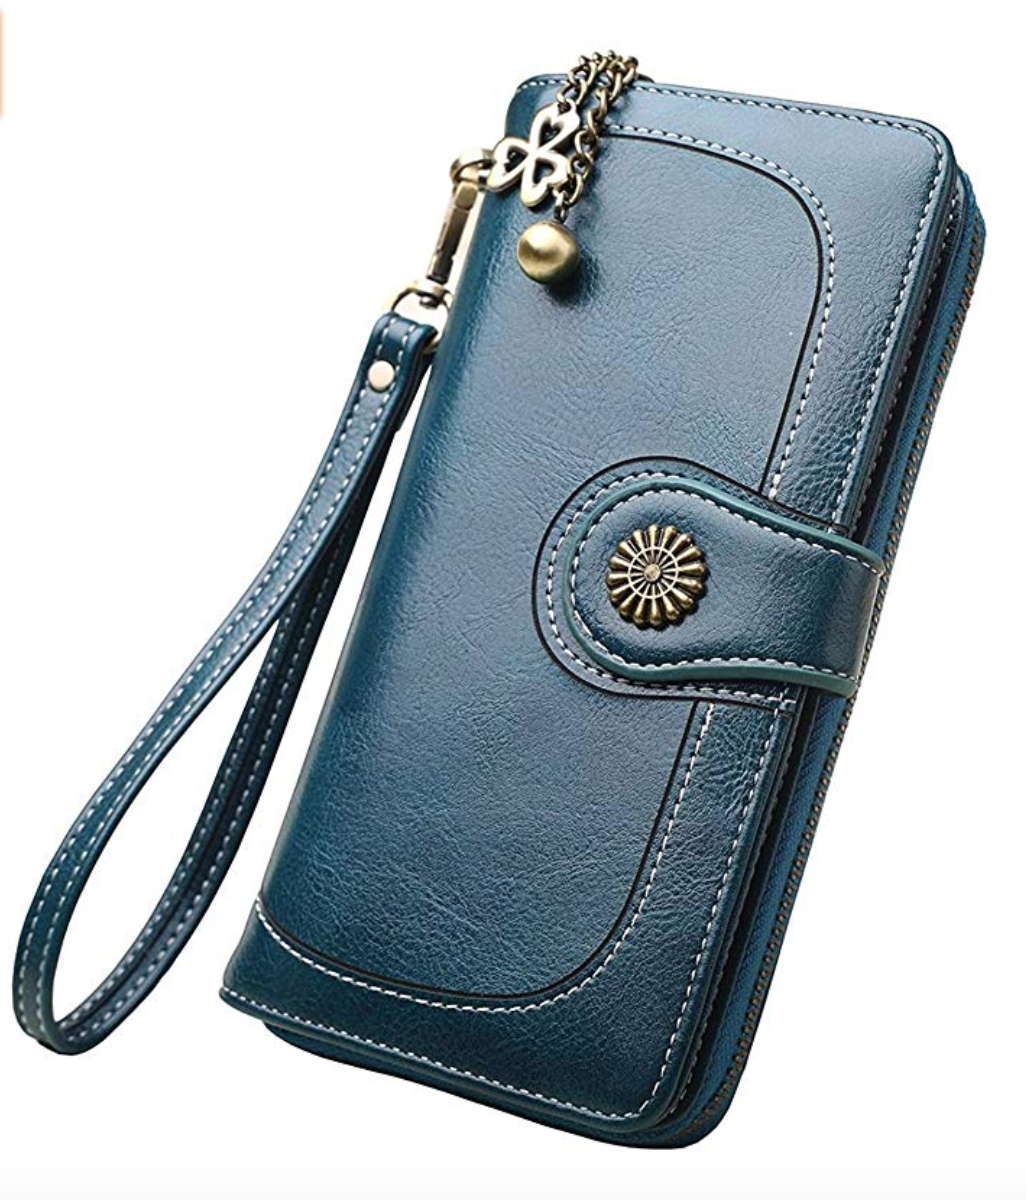 gifts for mom to keep her money safe. large leather wallet